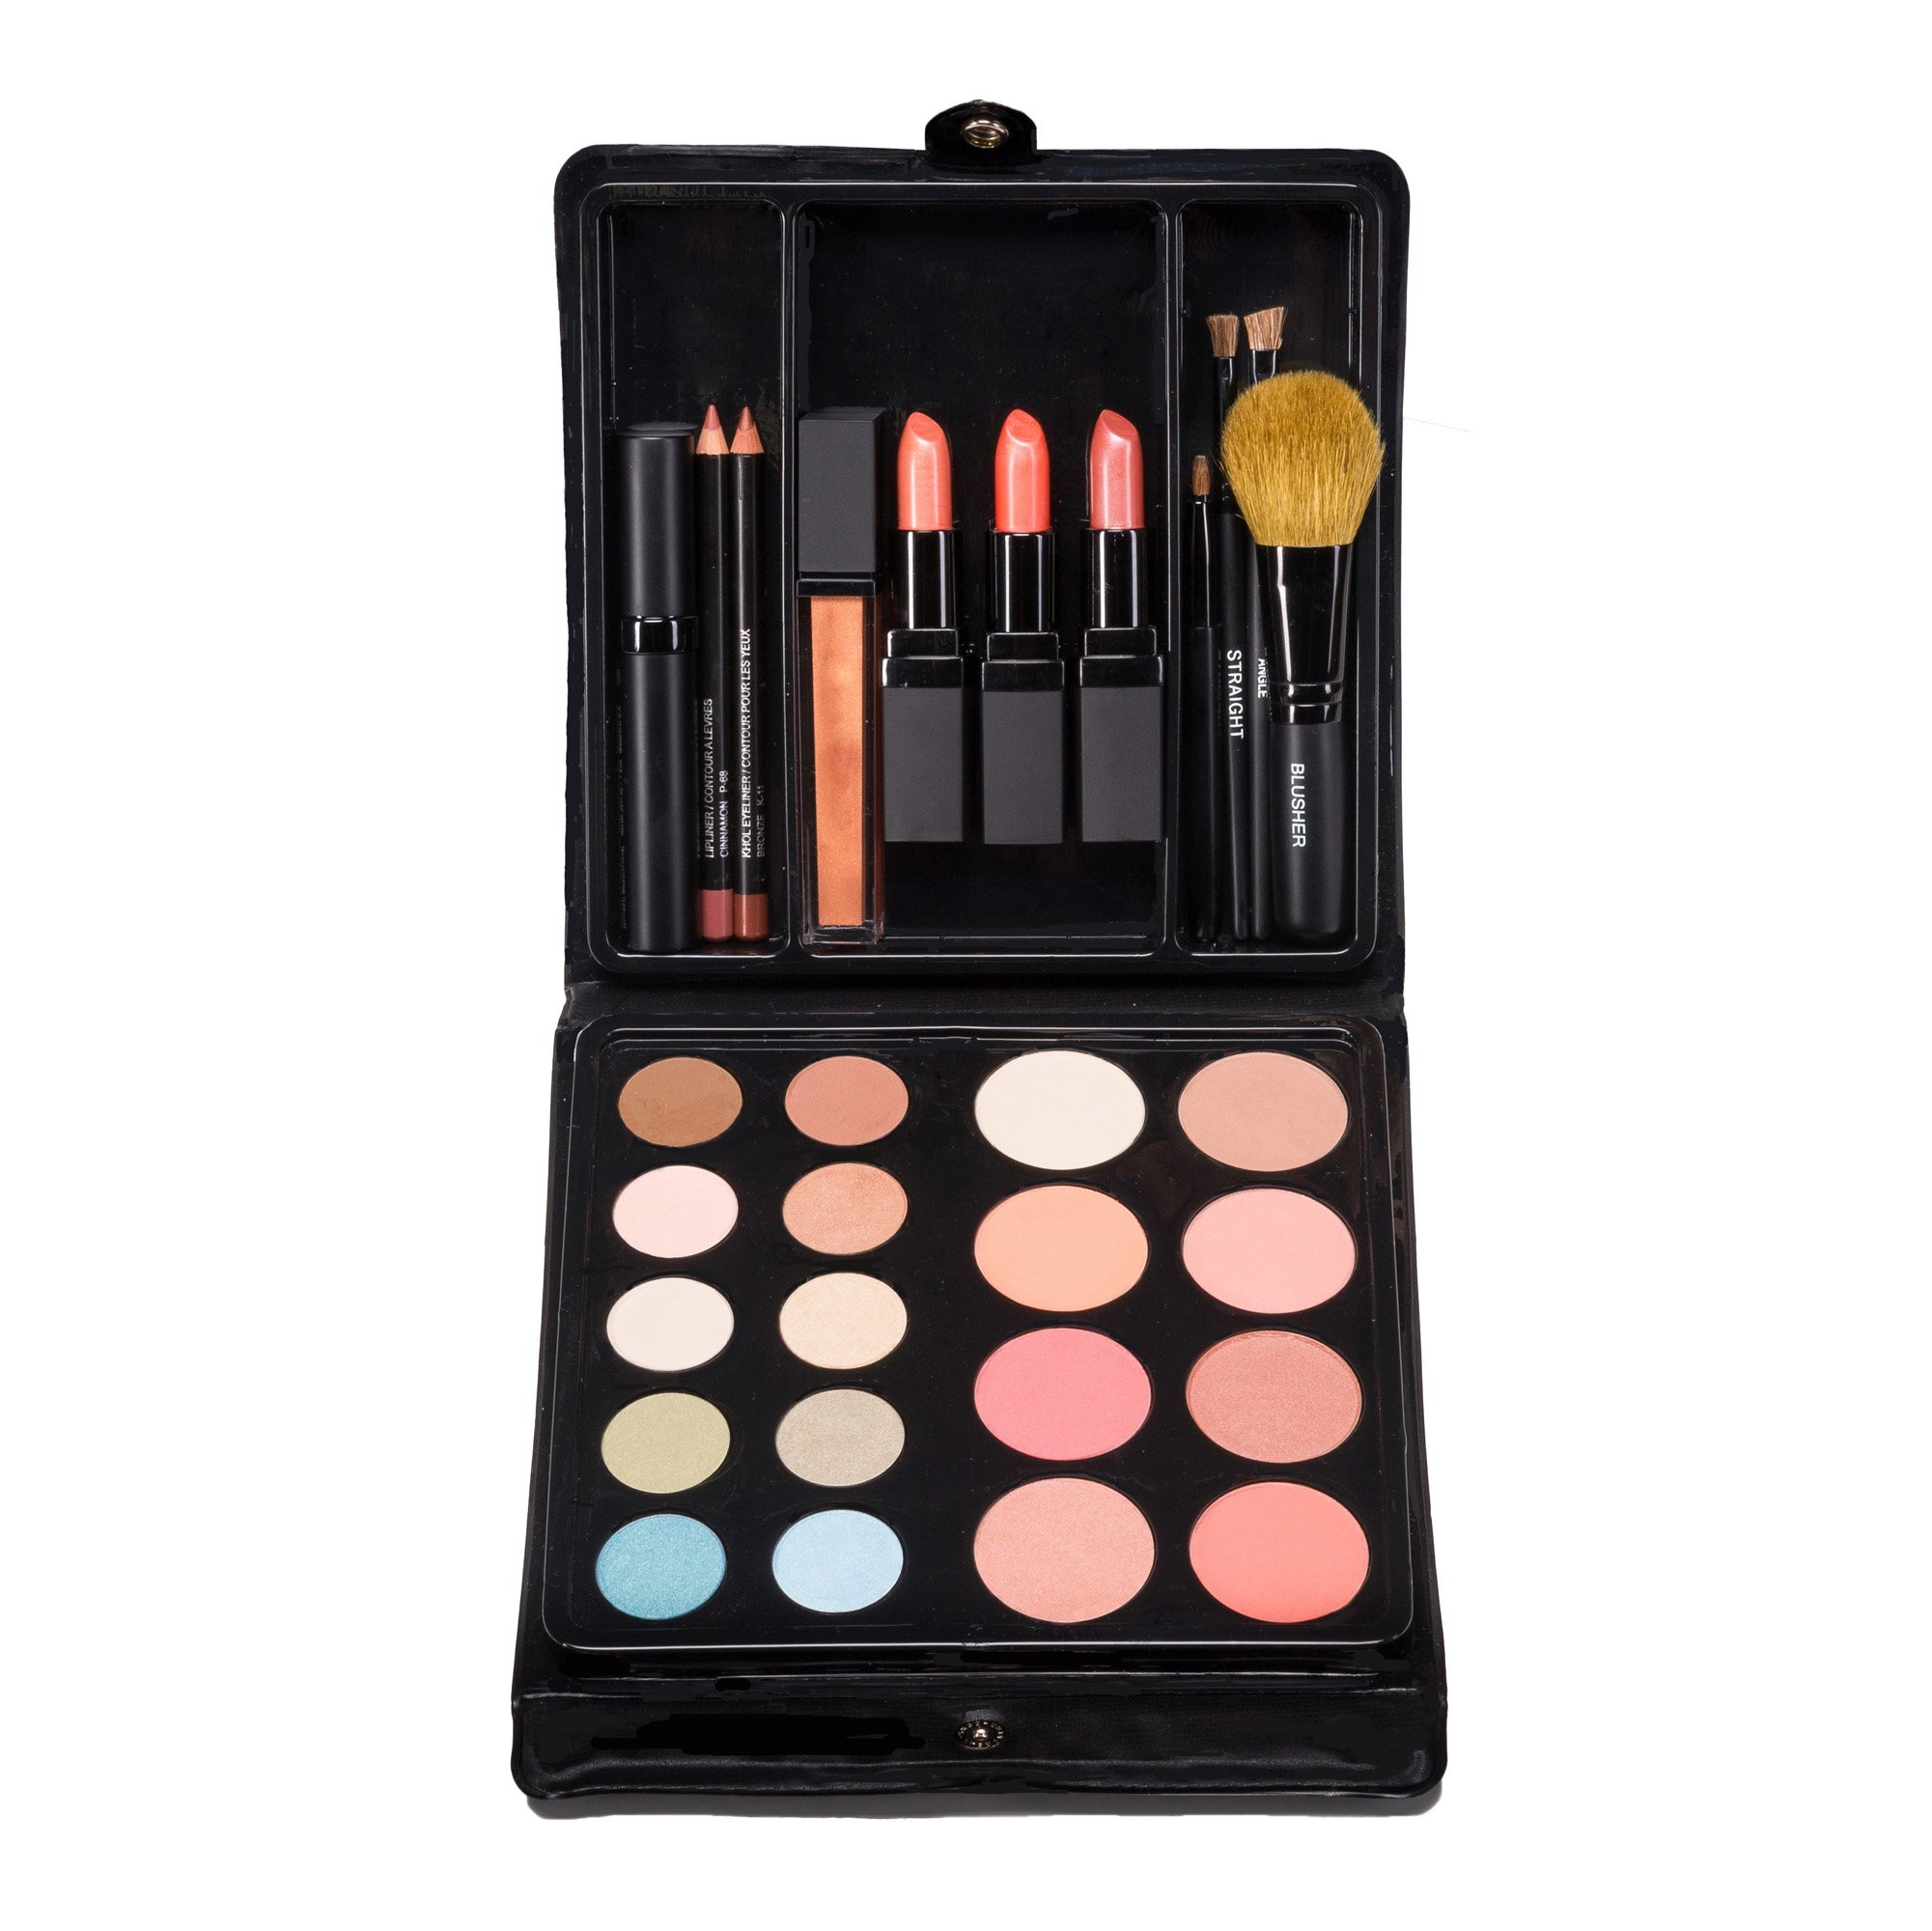 Ultimate Makeup Kit for Beginner to Pro: Shades for Warm Blondes: Eyeshadow, Contour, Blush, Lipstick, Lip Pencil, Lip Gloss, Mascara. By Jill Kirsh Color, Hollywood's Guru of Hue